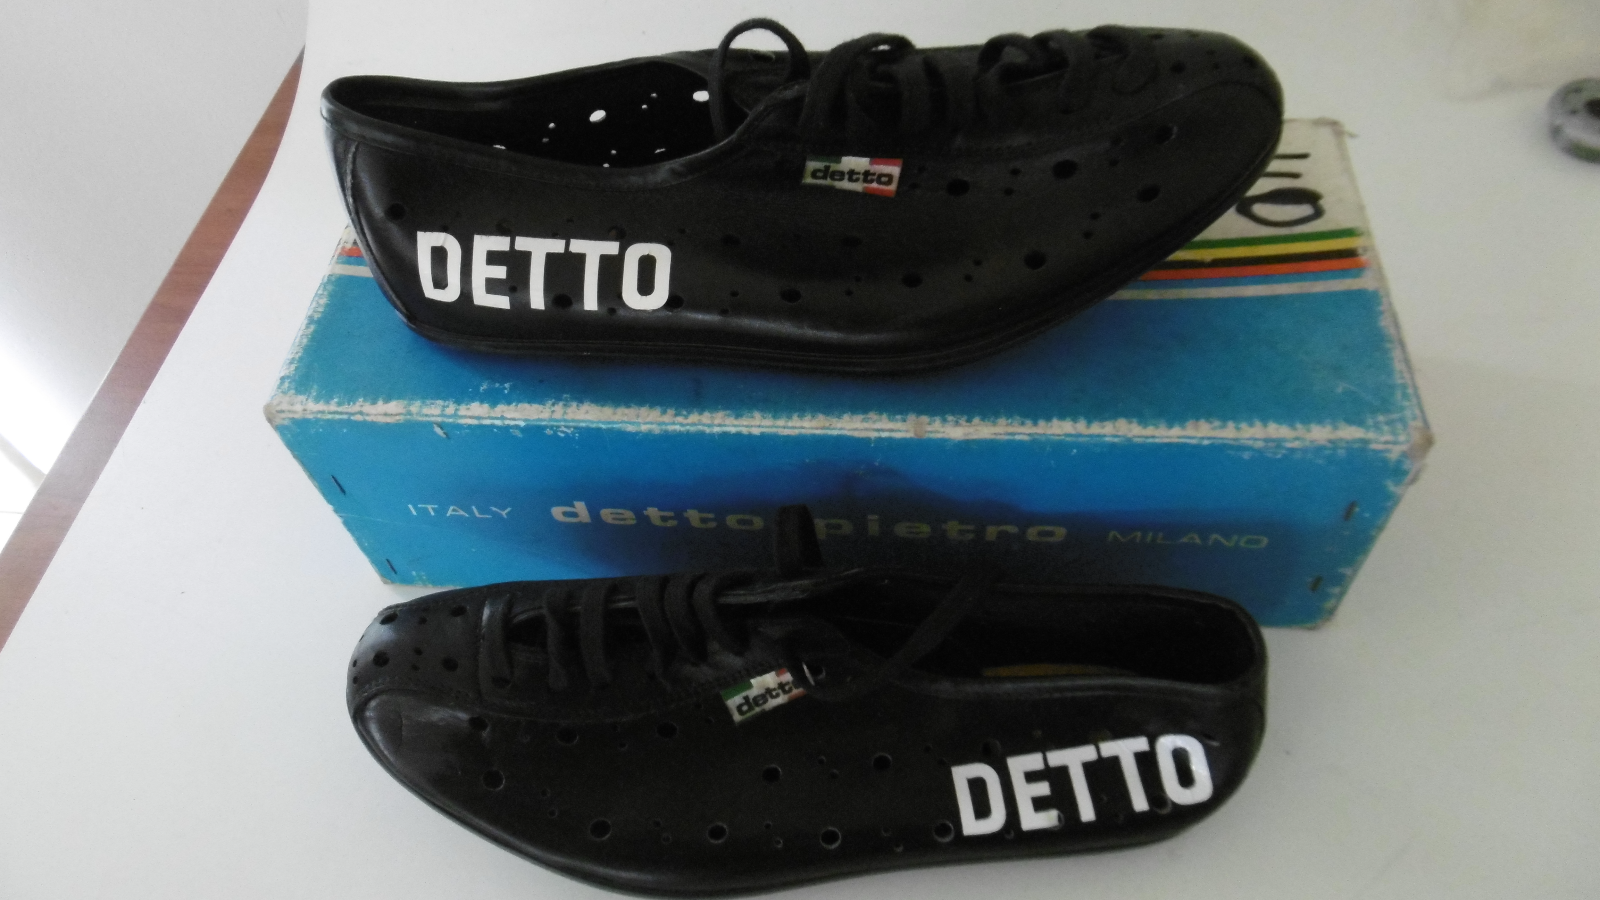 DETTO PIETRO Cycling Shoes 1 Pair  Europa Size 40 New In Box